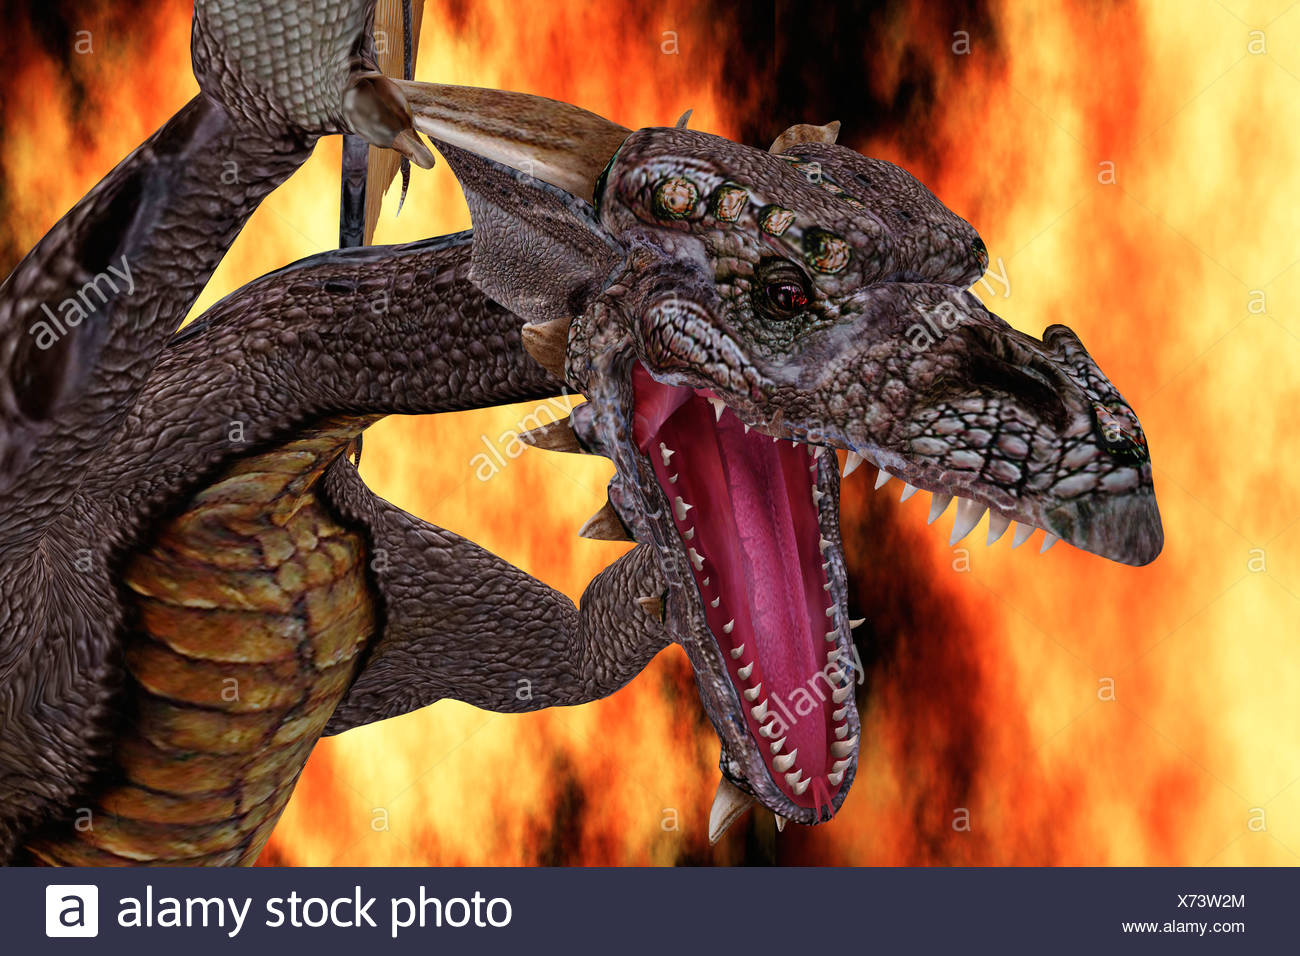 Computer Generated Image Of A Dragon - Stock Image